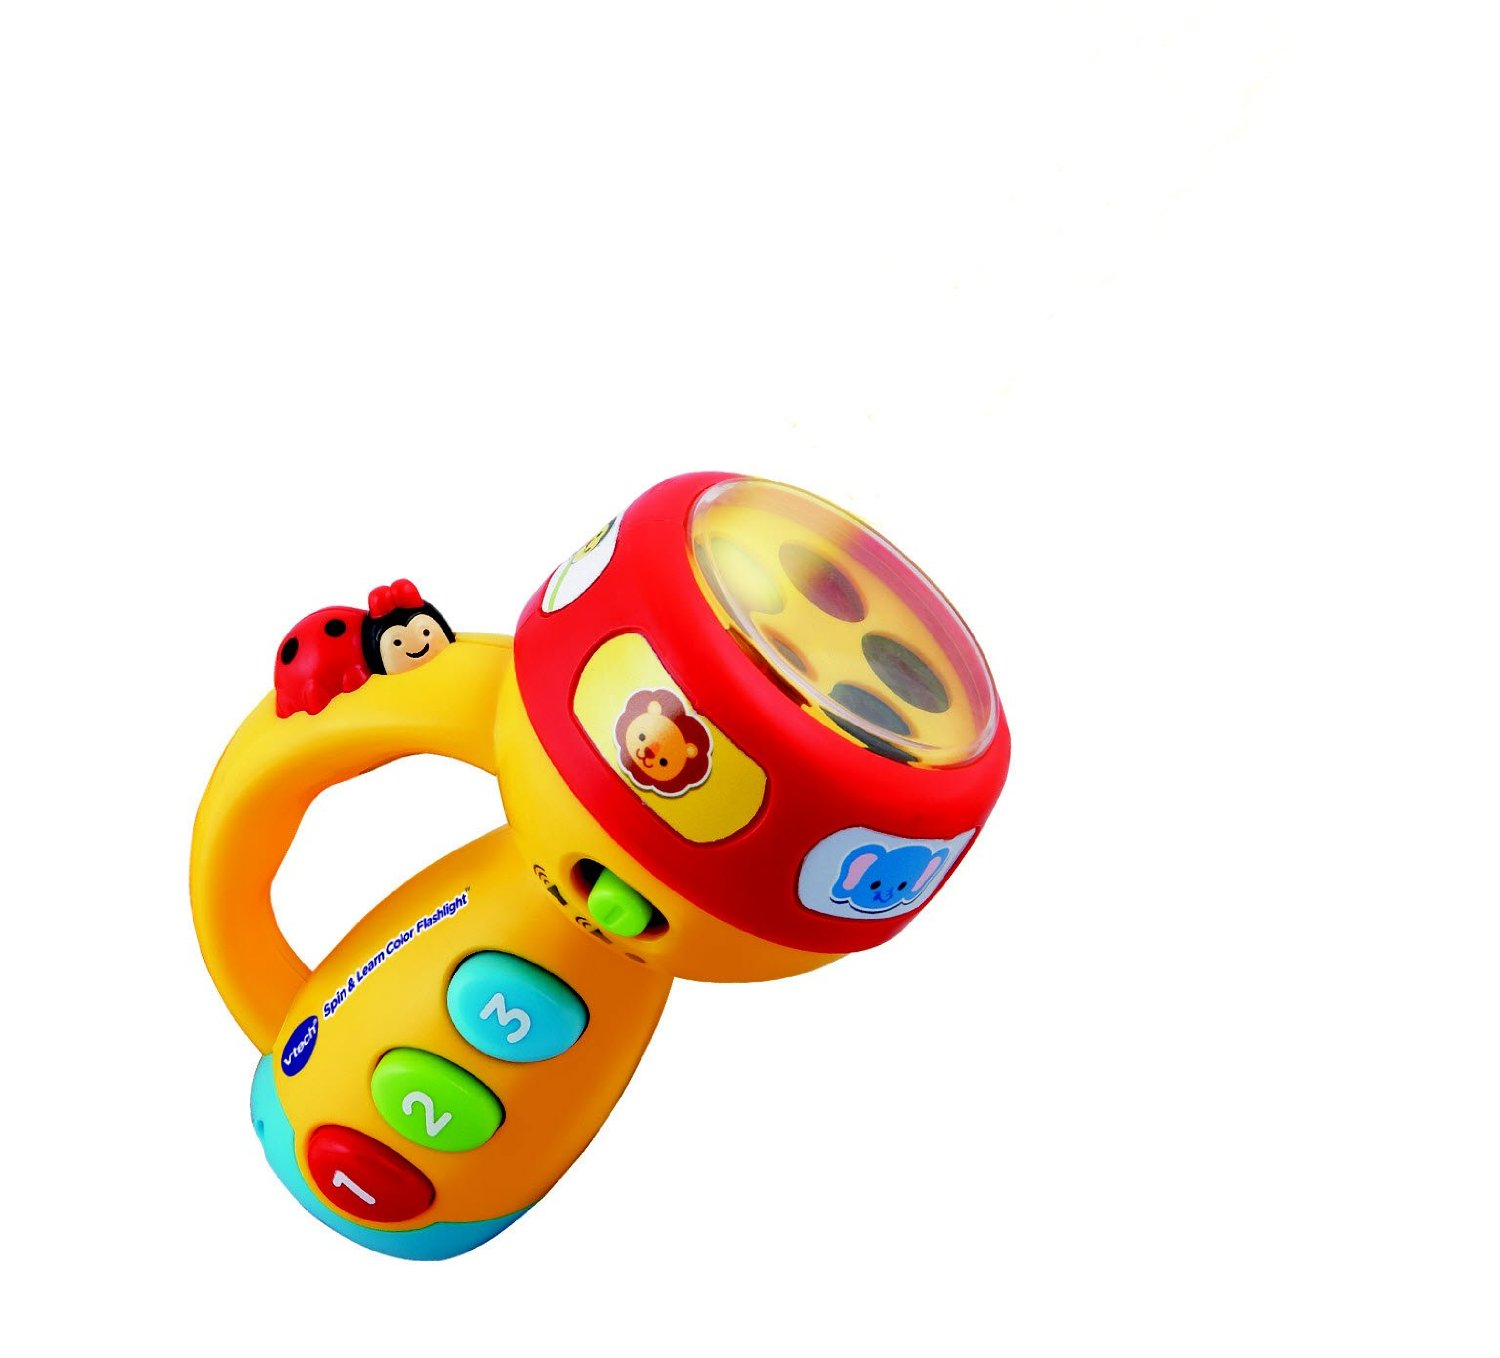 Đèn pin học mà chơi VTech Spin and Learn Color Flashlight